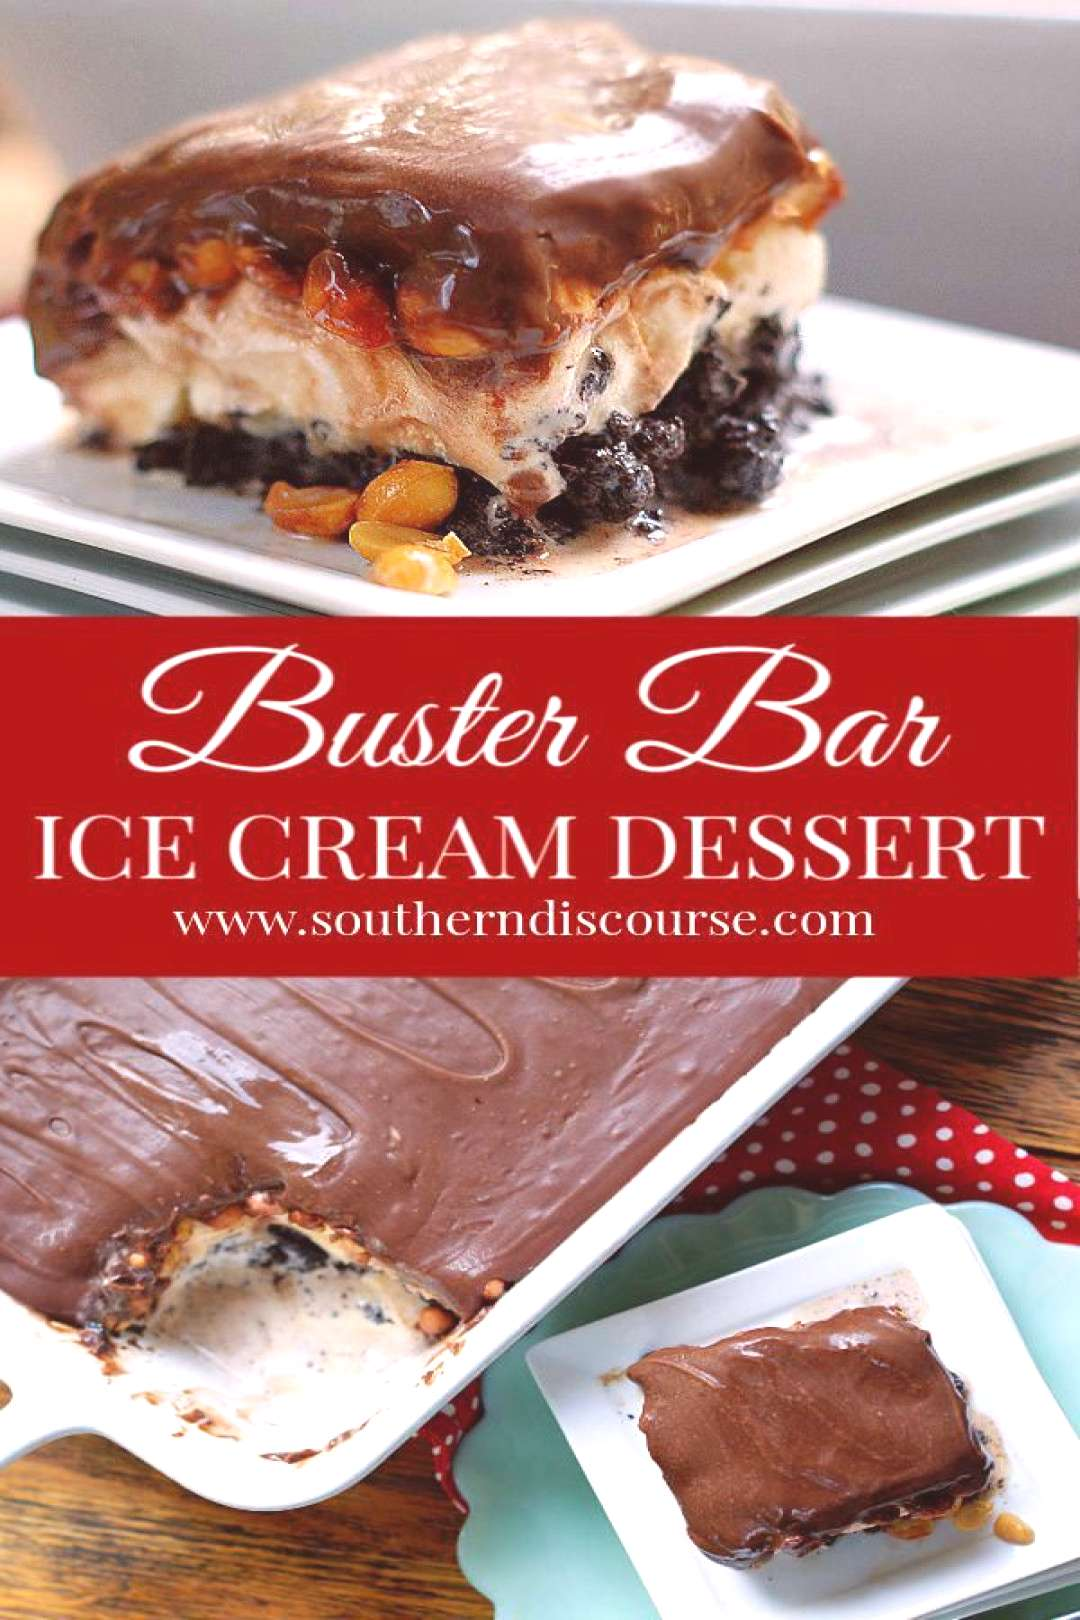 Buster Bar Ice Cream Dessert Loaded with salted peanuts and layer of vanilla ice cream on an easy h